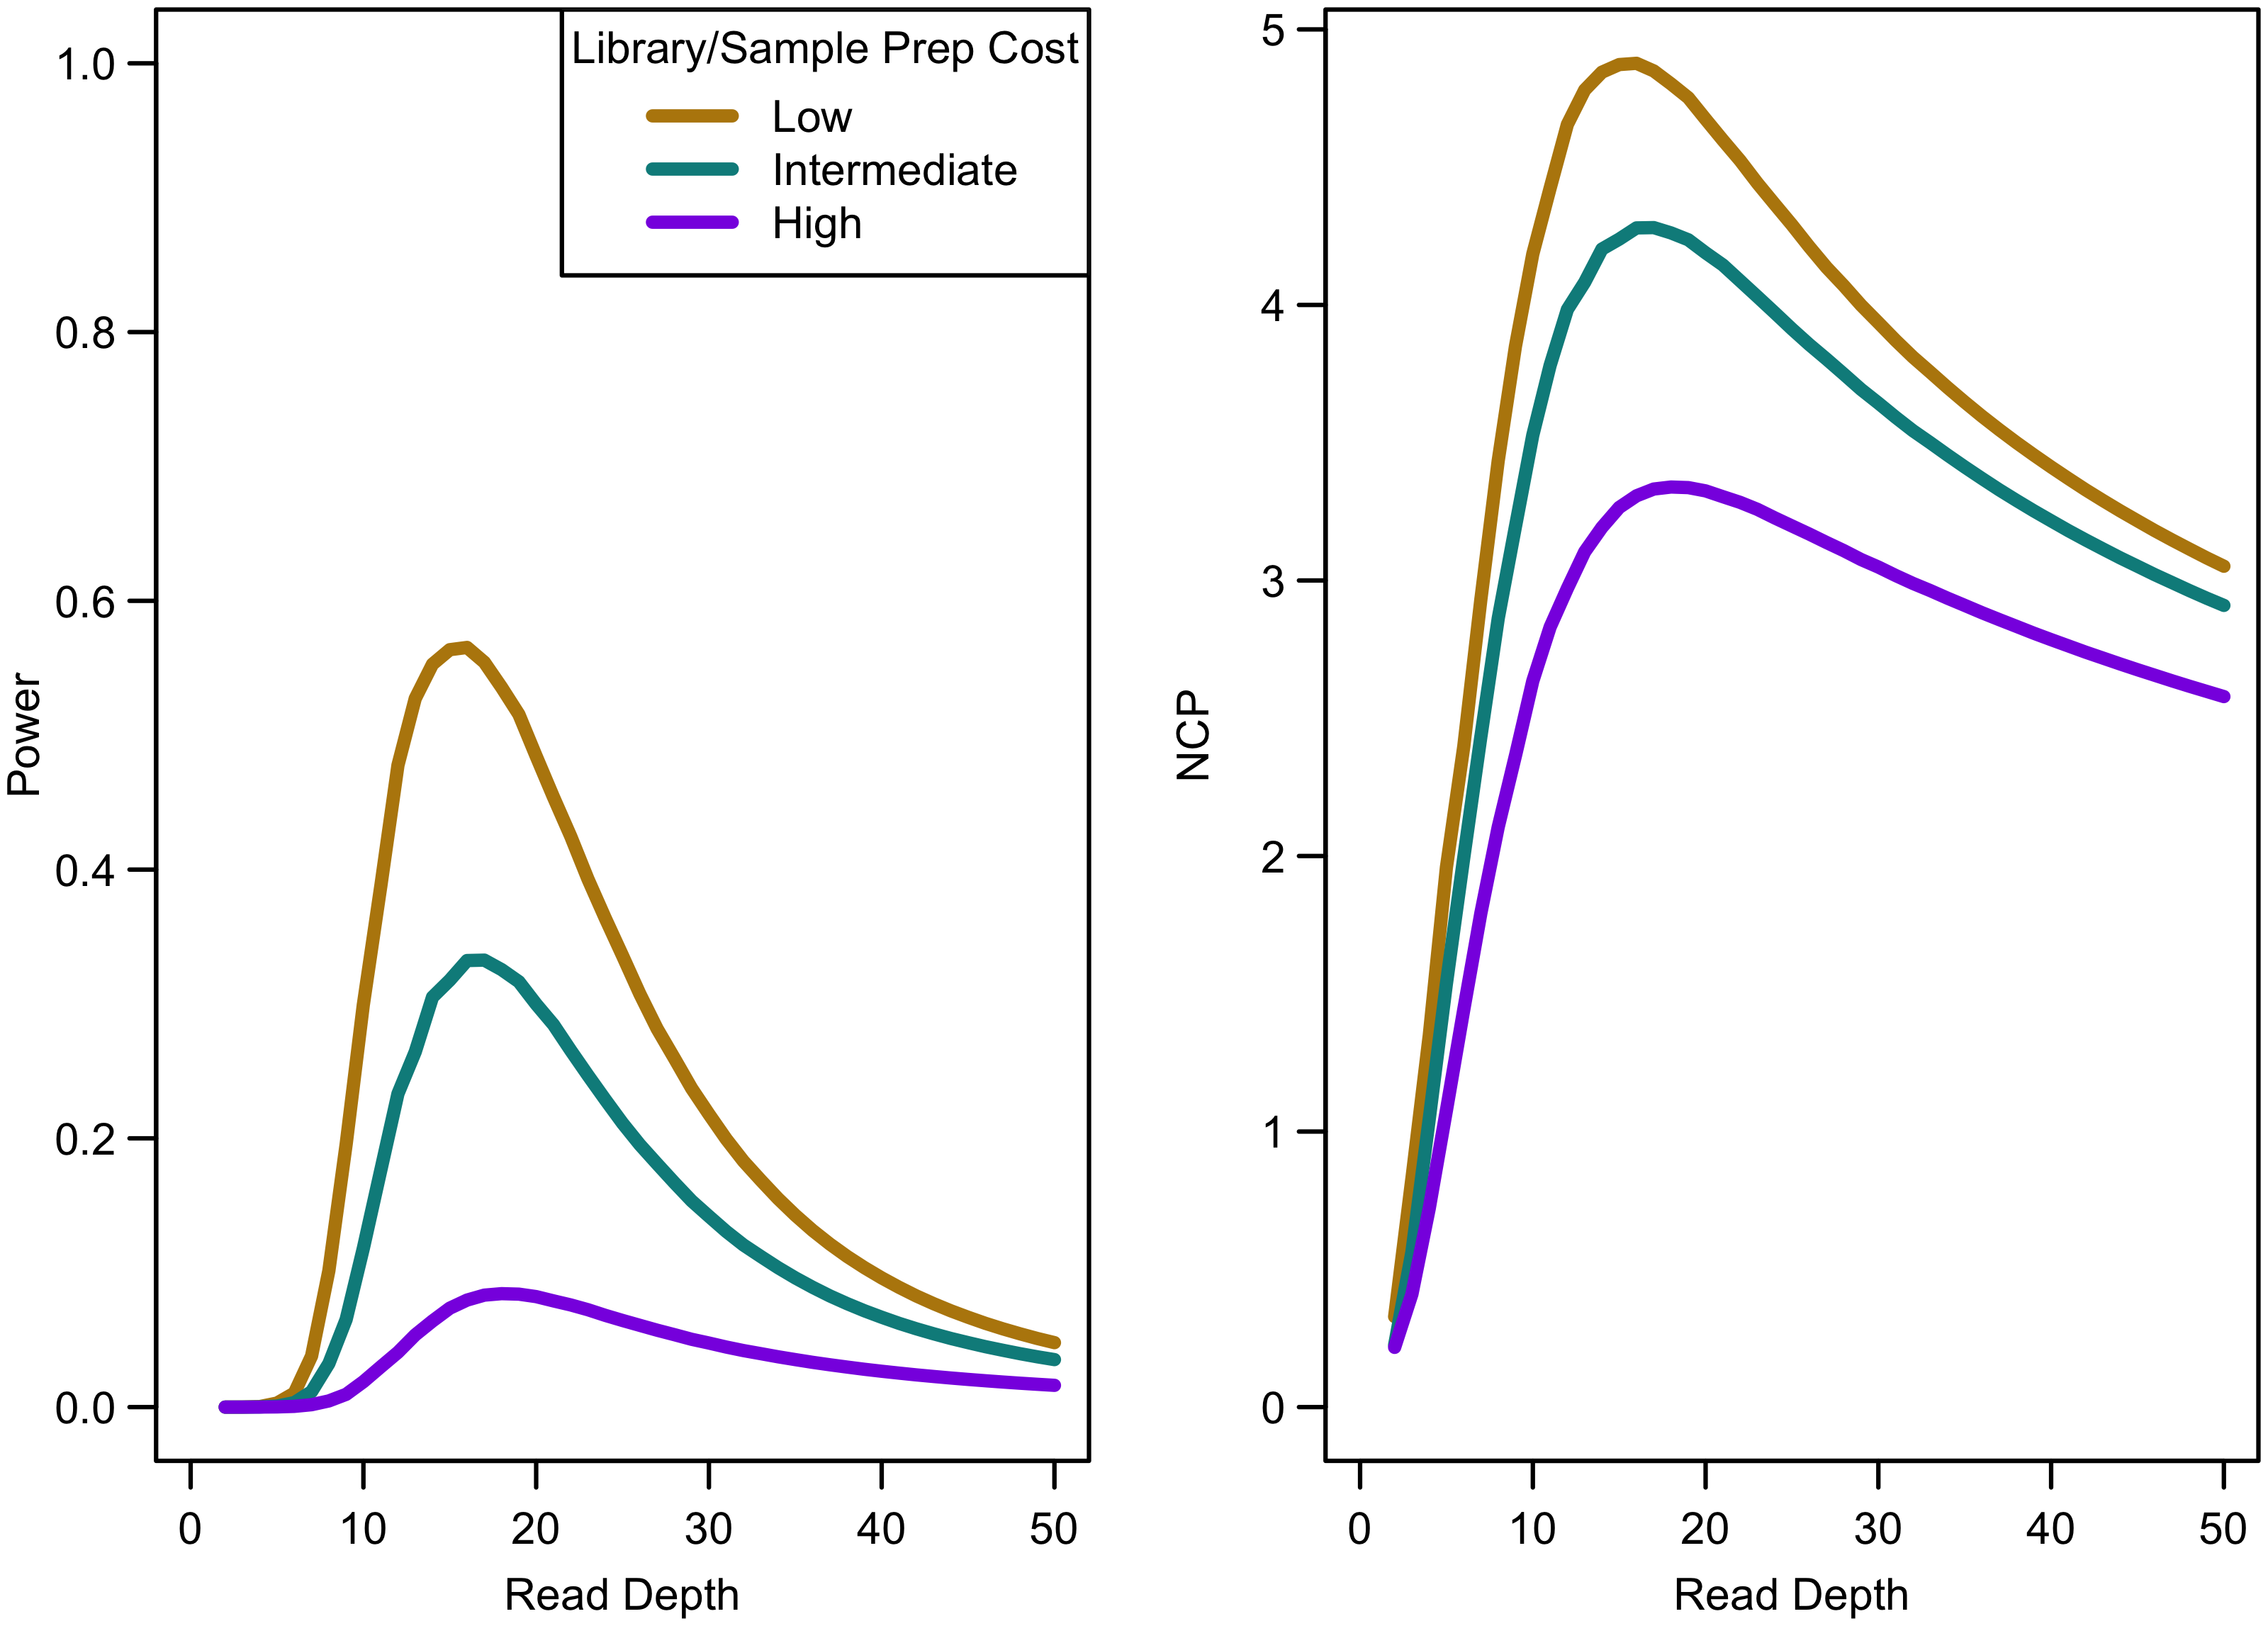 Association study power and NCP by read depth for different sample preparation costs.